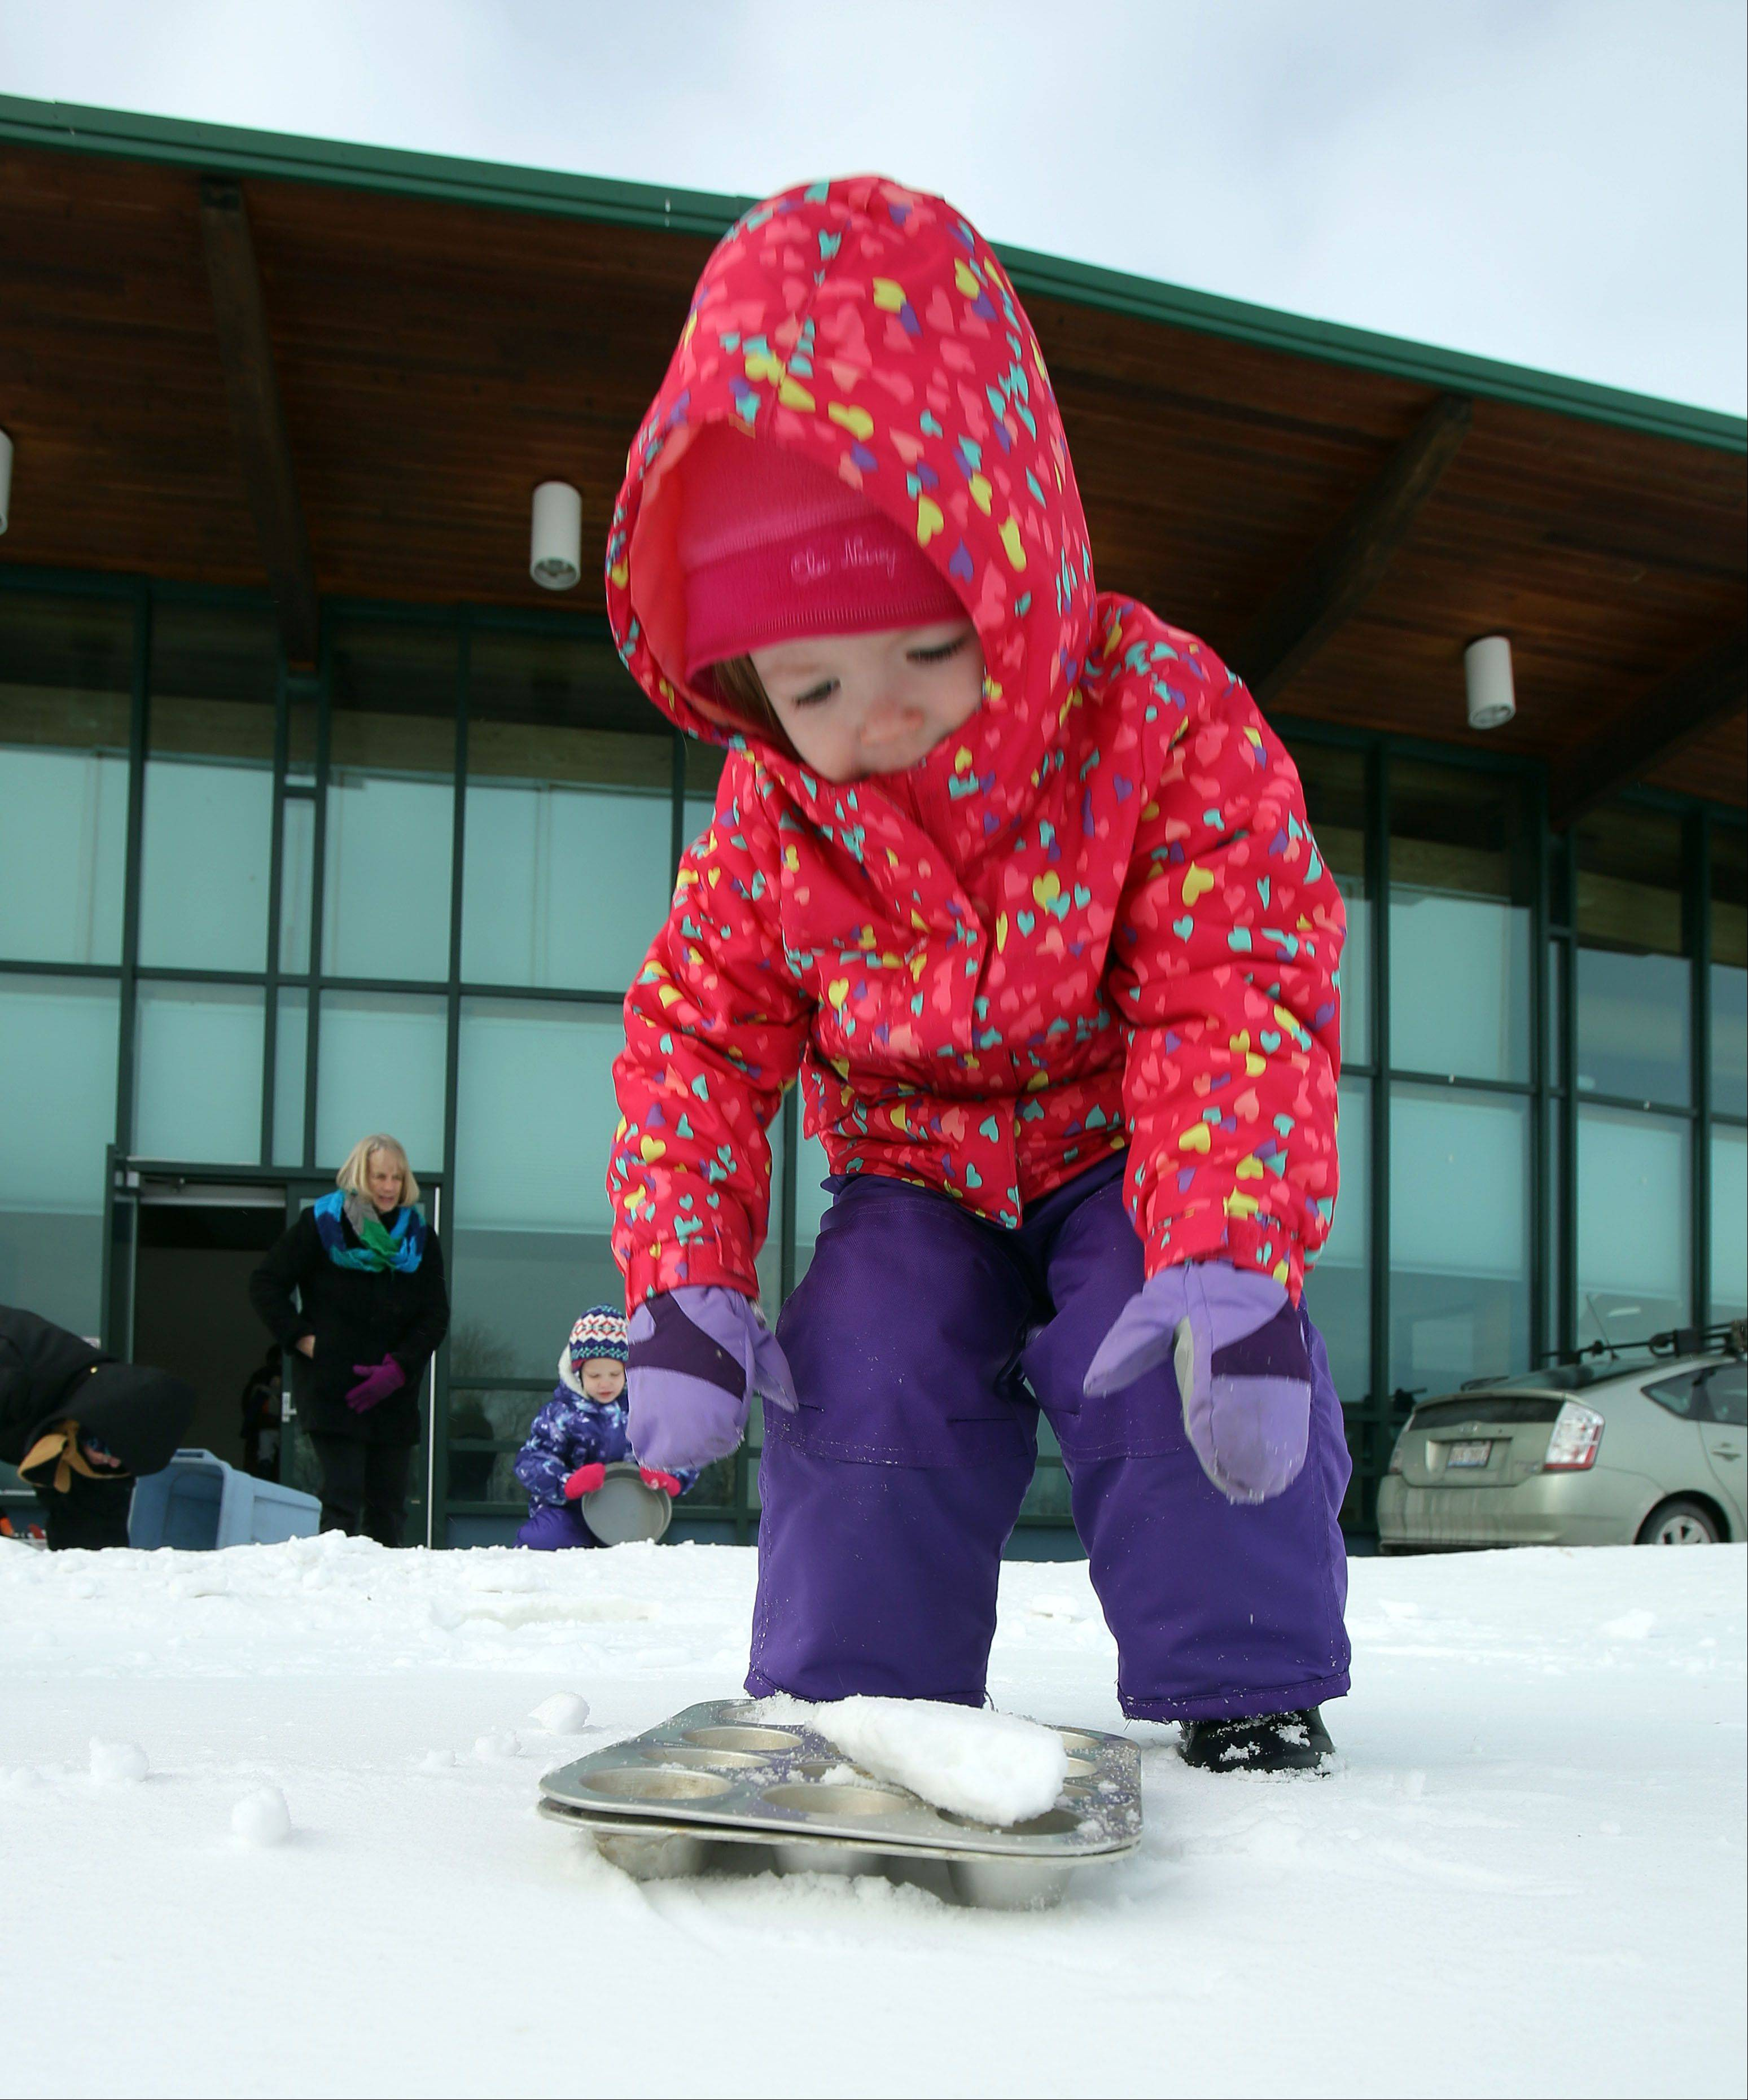 Steve Lundy/slundy@dailyherald.com2-year-old Autumn Noll, of Libertyville, uses a cupcake tin to make snow sculptures during a program called Heathly-Happy Kids in Nature at Greenbelt Forest Preserve in North Chicago Thursday.